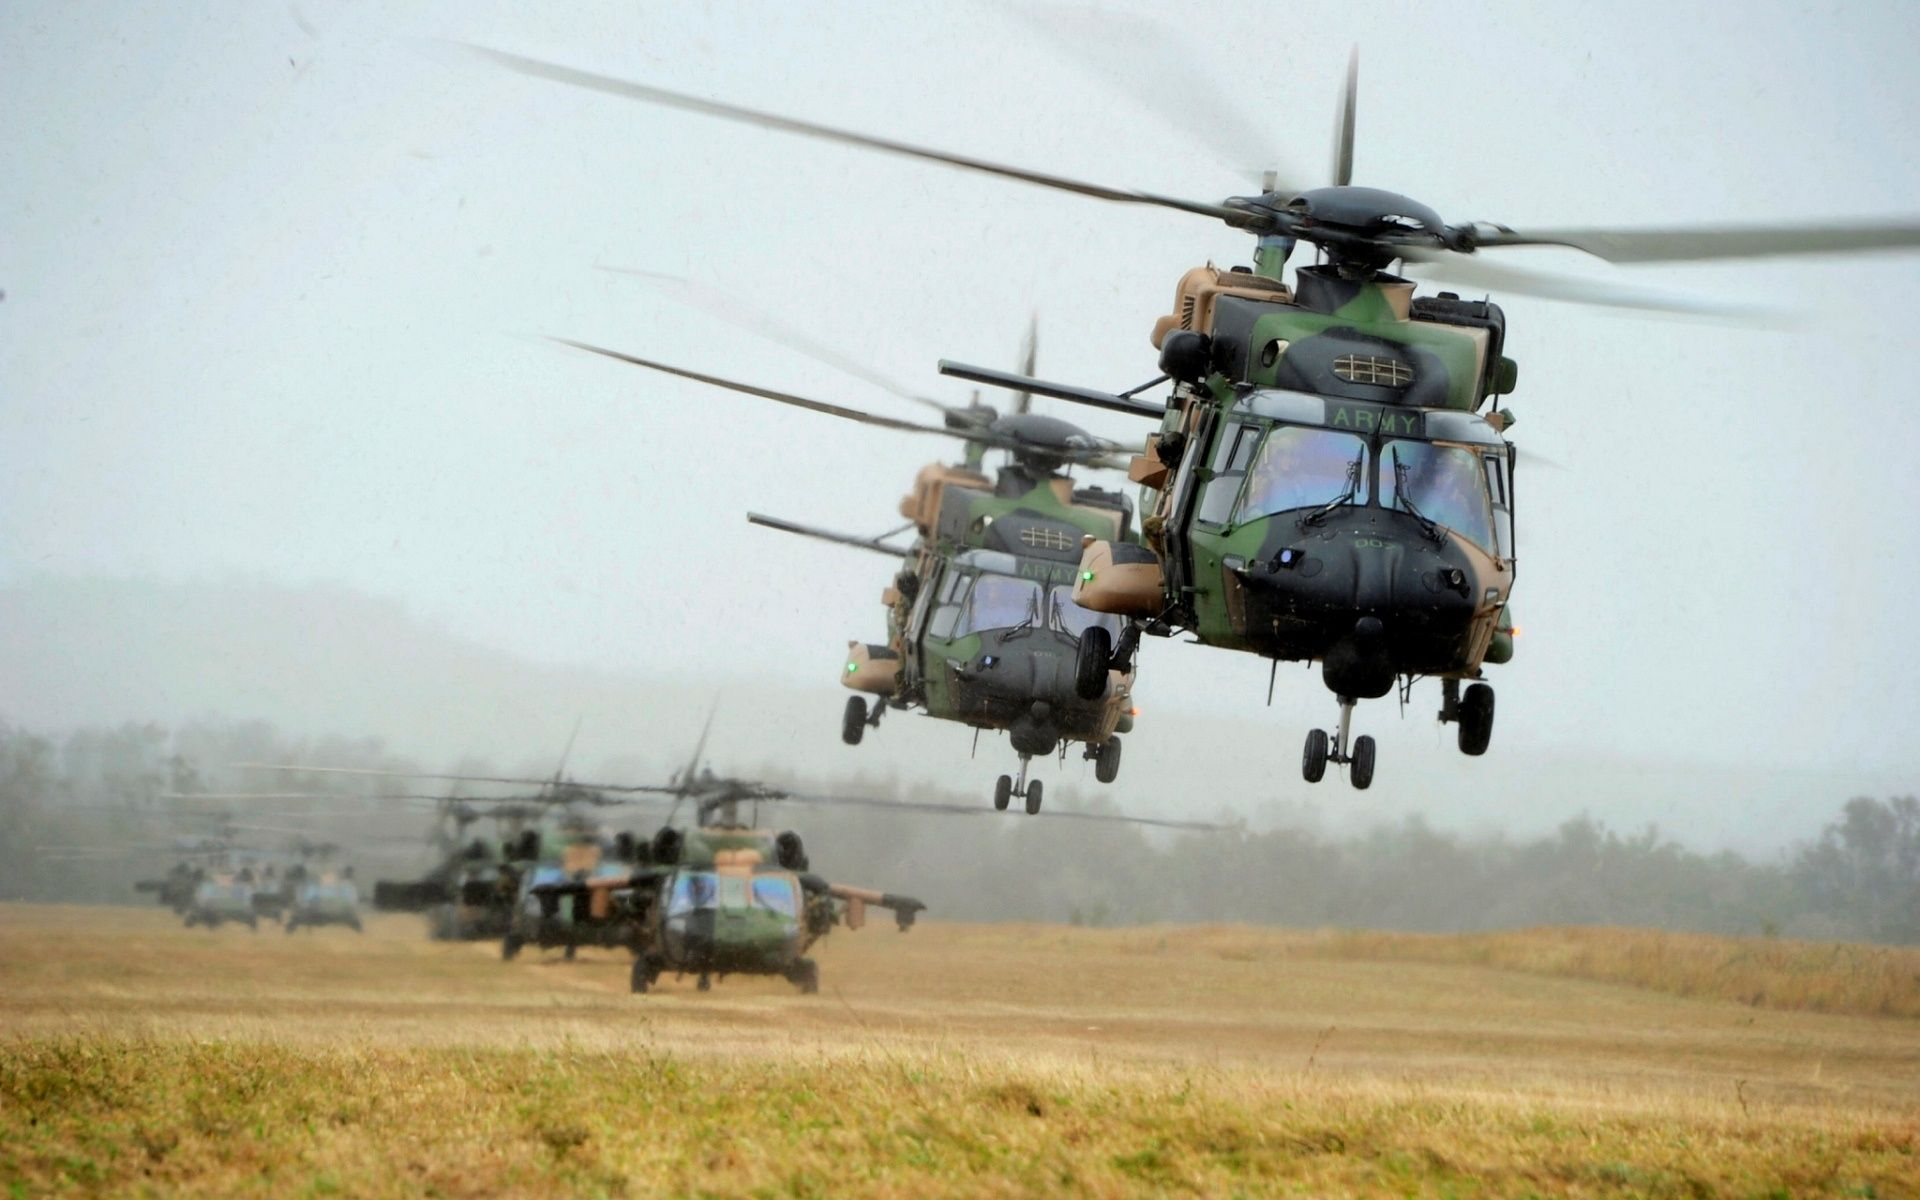 Aircraft Wallpapers Helicopters Download HD